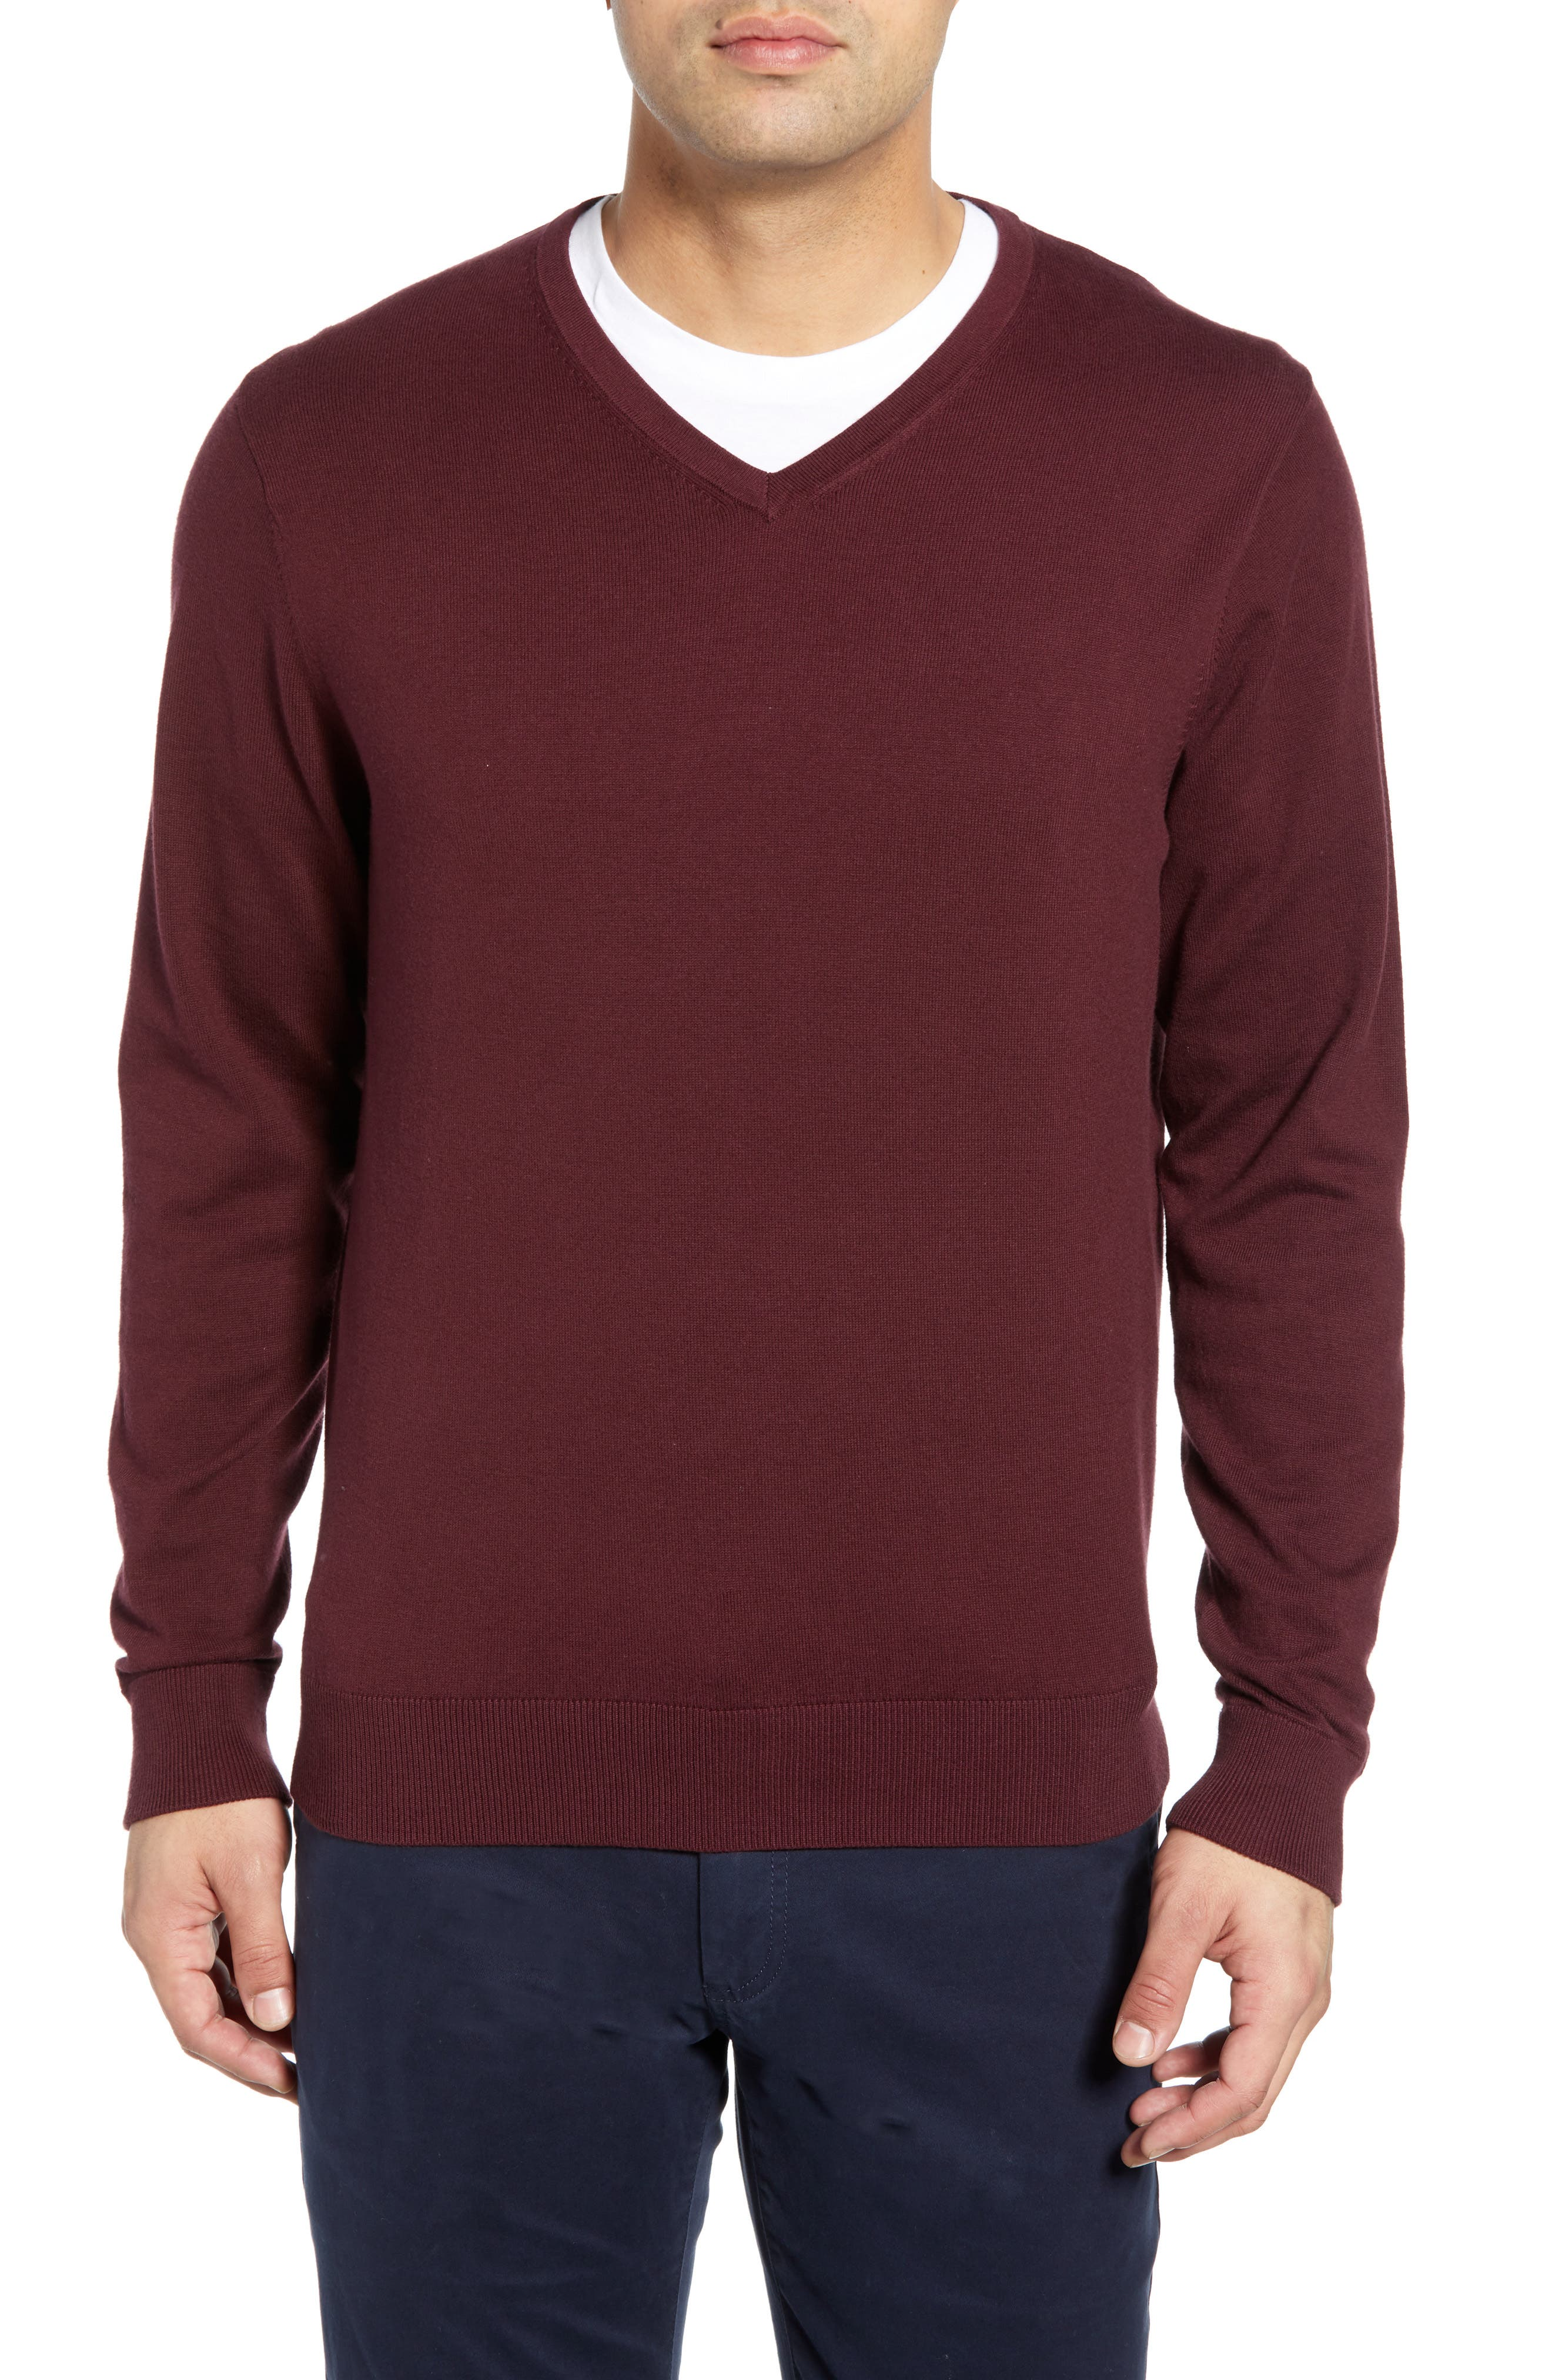 CUTTER & BUCK, Lakemont V-Neck Sweater, Main thumbnail 1, color, BORDEAUX